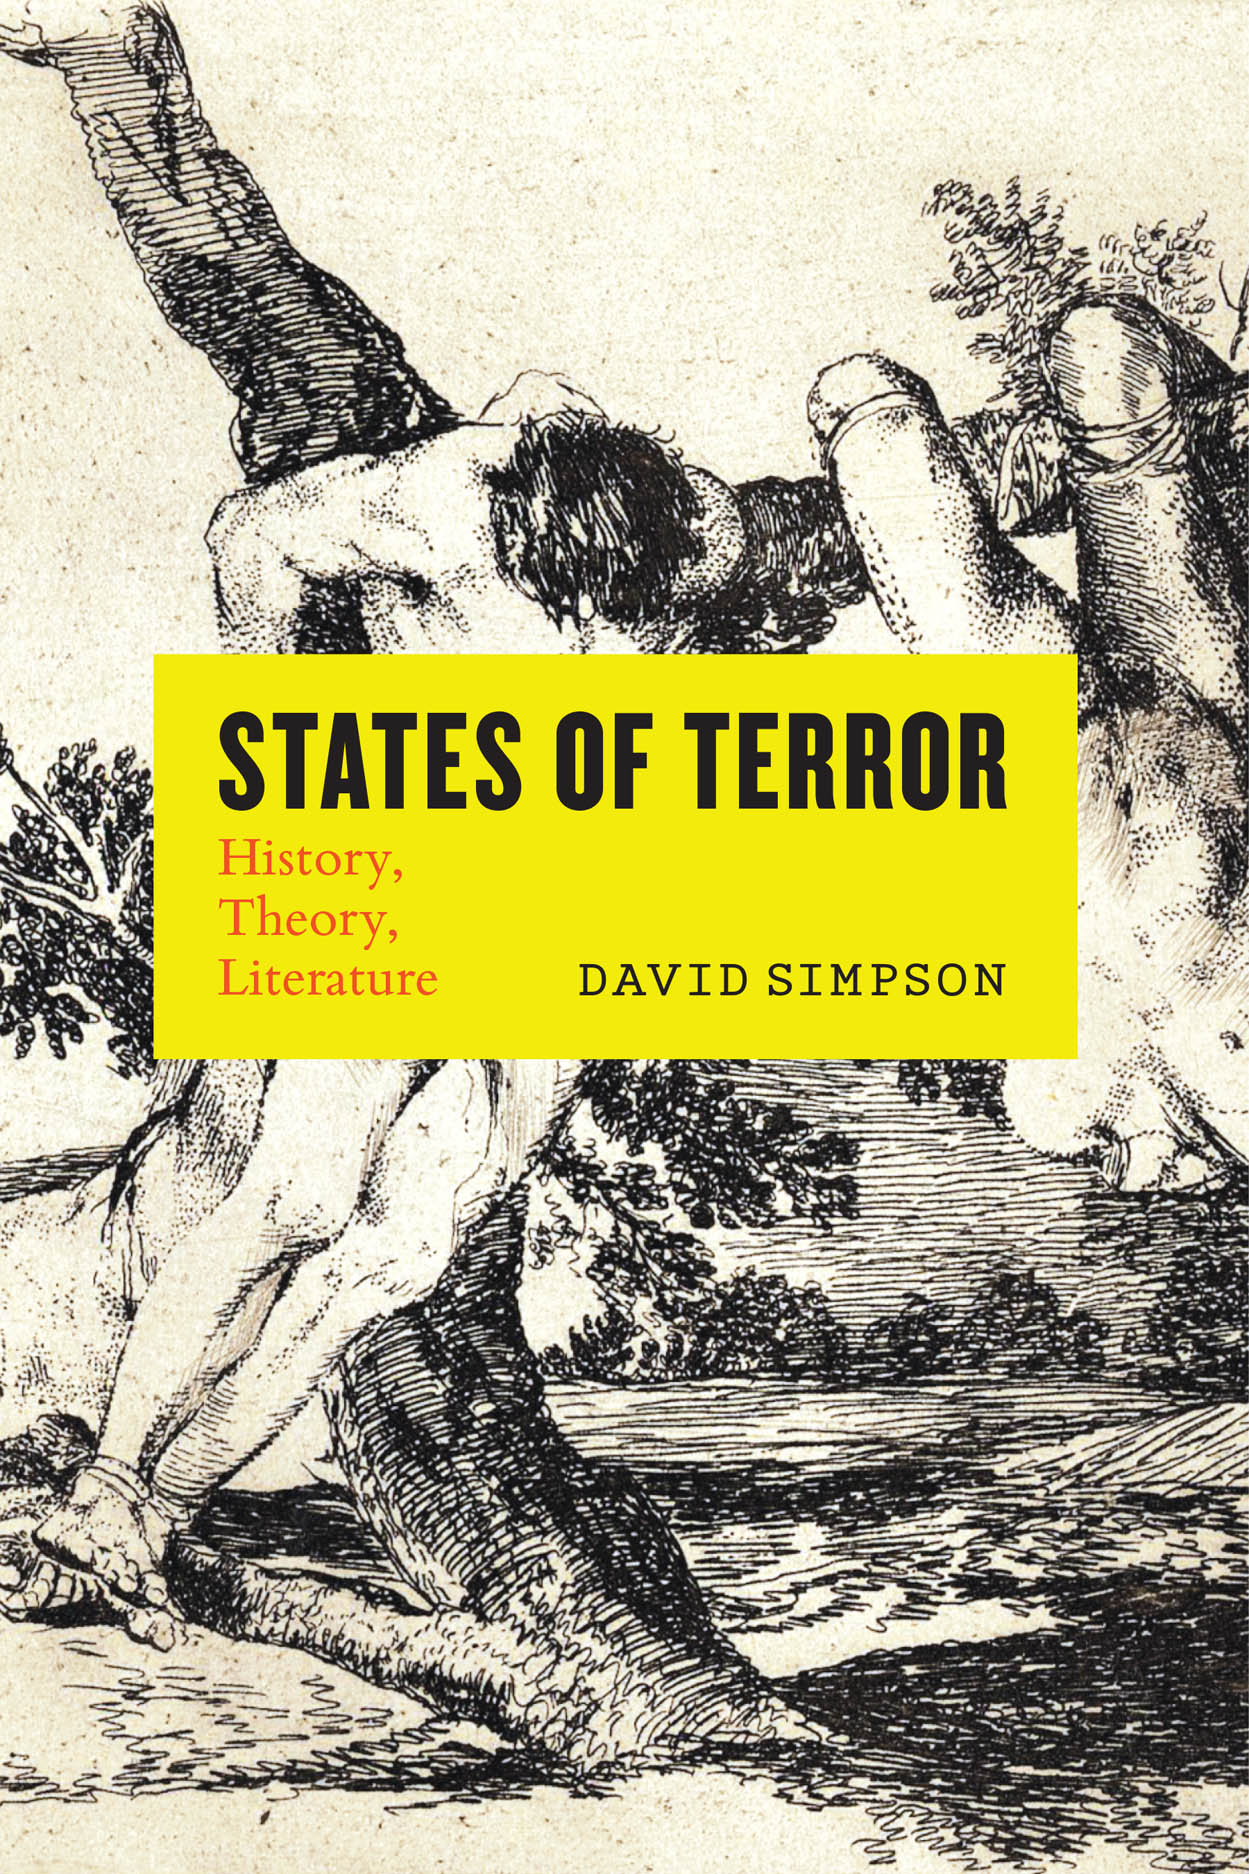 States of Terror: History, Theory, Literature